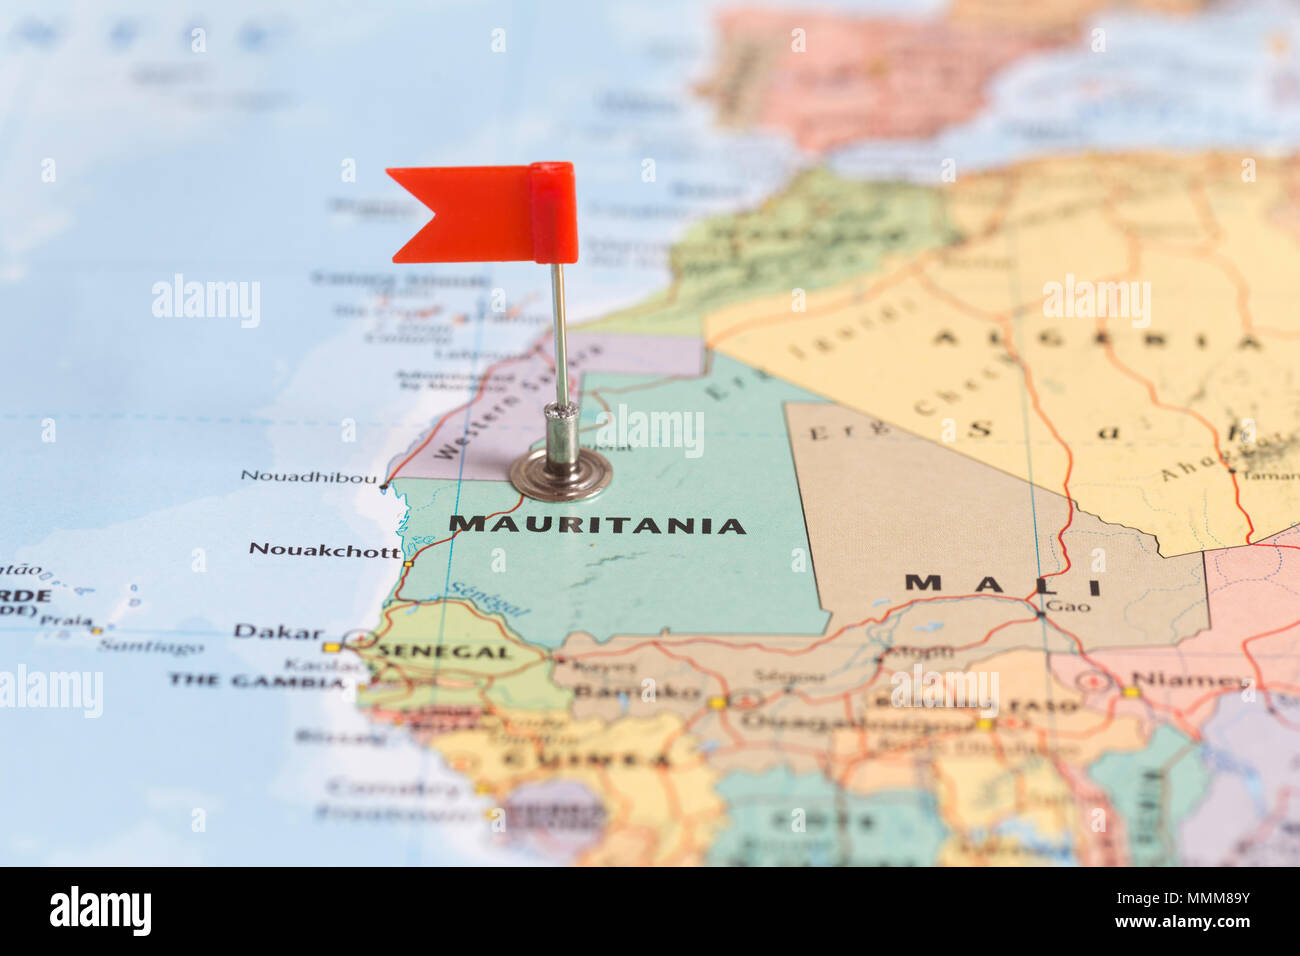 Small red flag marking the African country of  Mauritania on a world map. - Stock Image